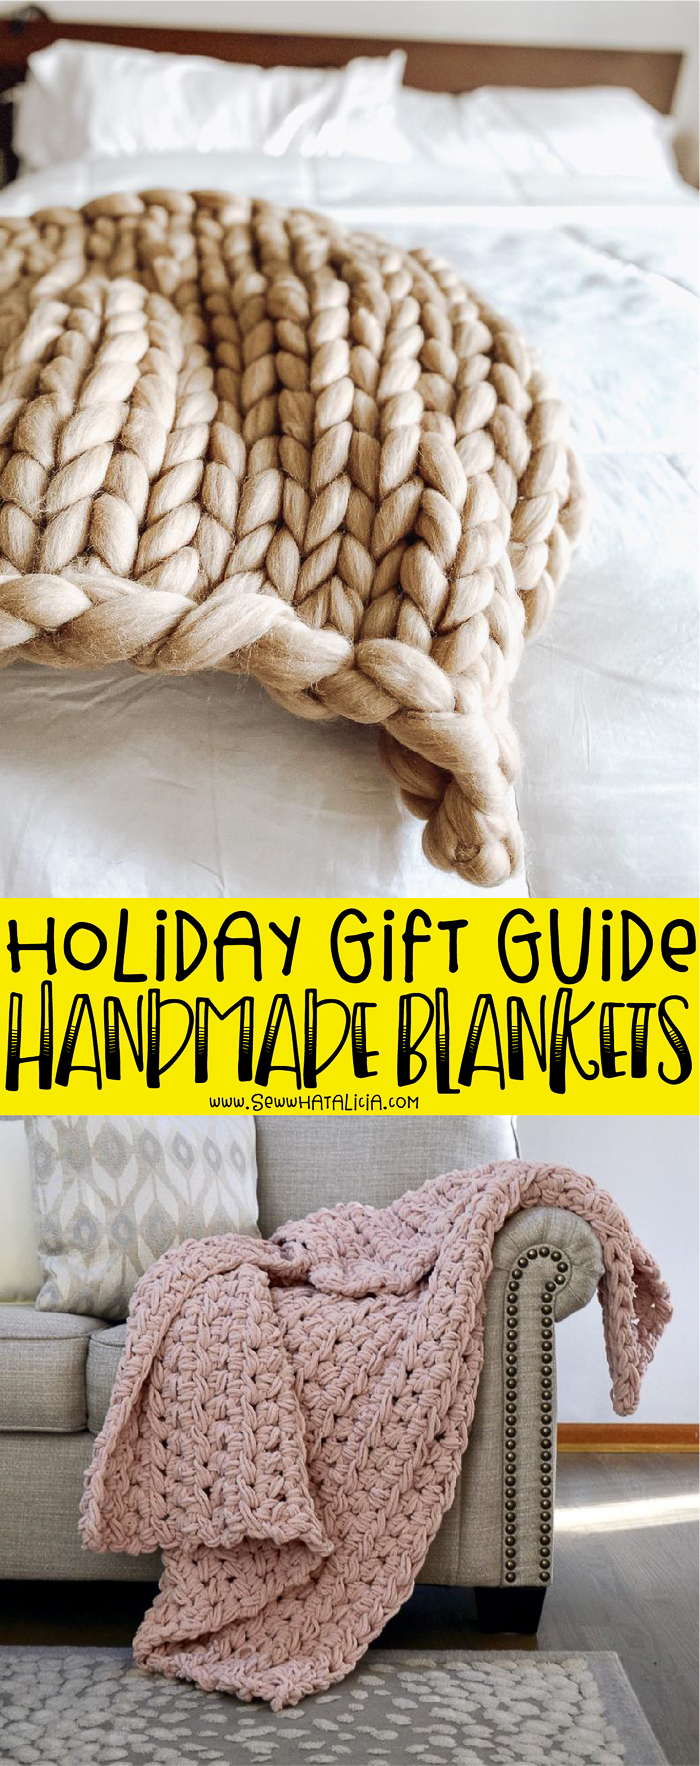 These handmade blankets make wonderful gifts. Sometimes you don't have time, or know how, to make your own blankets. Click through for a huge list of great blankets to give as gifts from small business owners!